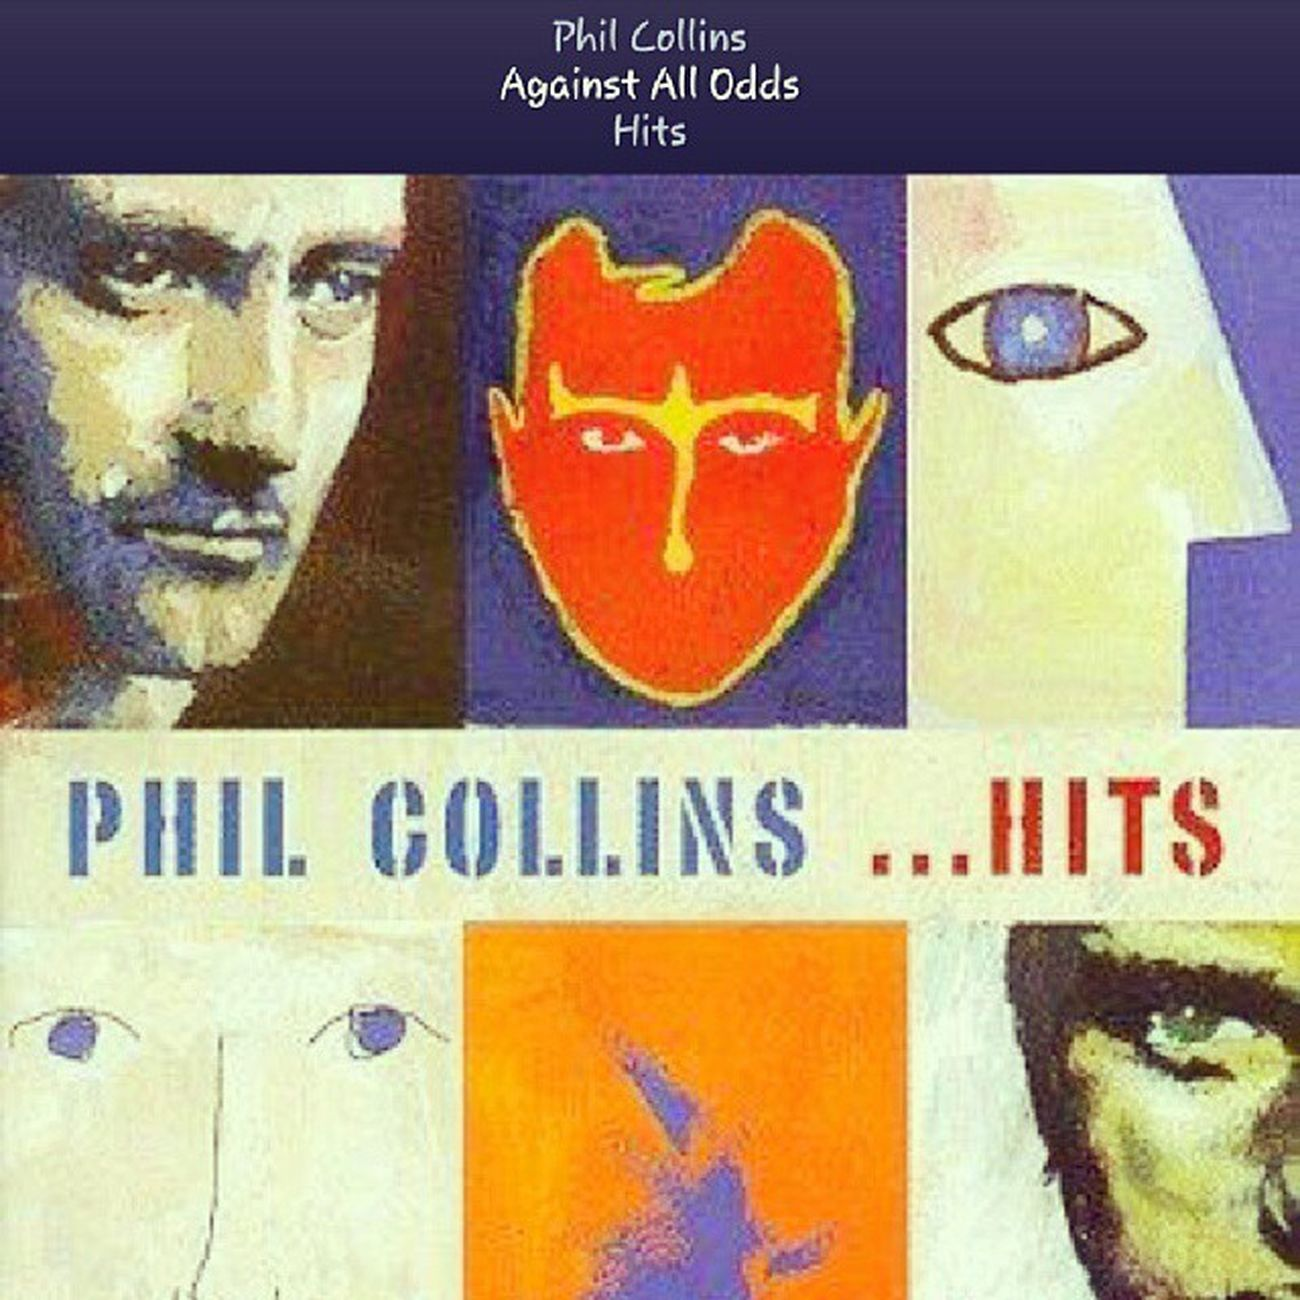 Happy Hump Day!!! 80slovesong Morningtunes Pandora Philcollins againstallodds musicalgenius mymorningcommute